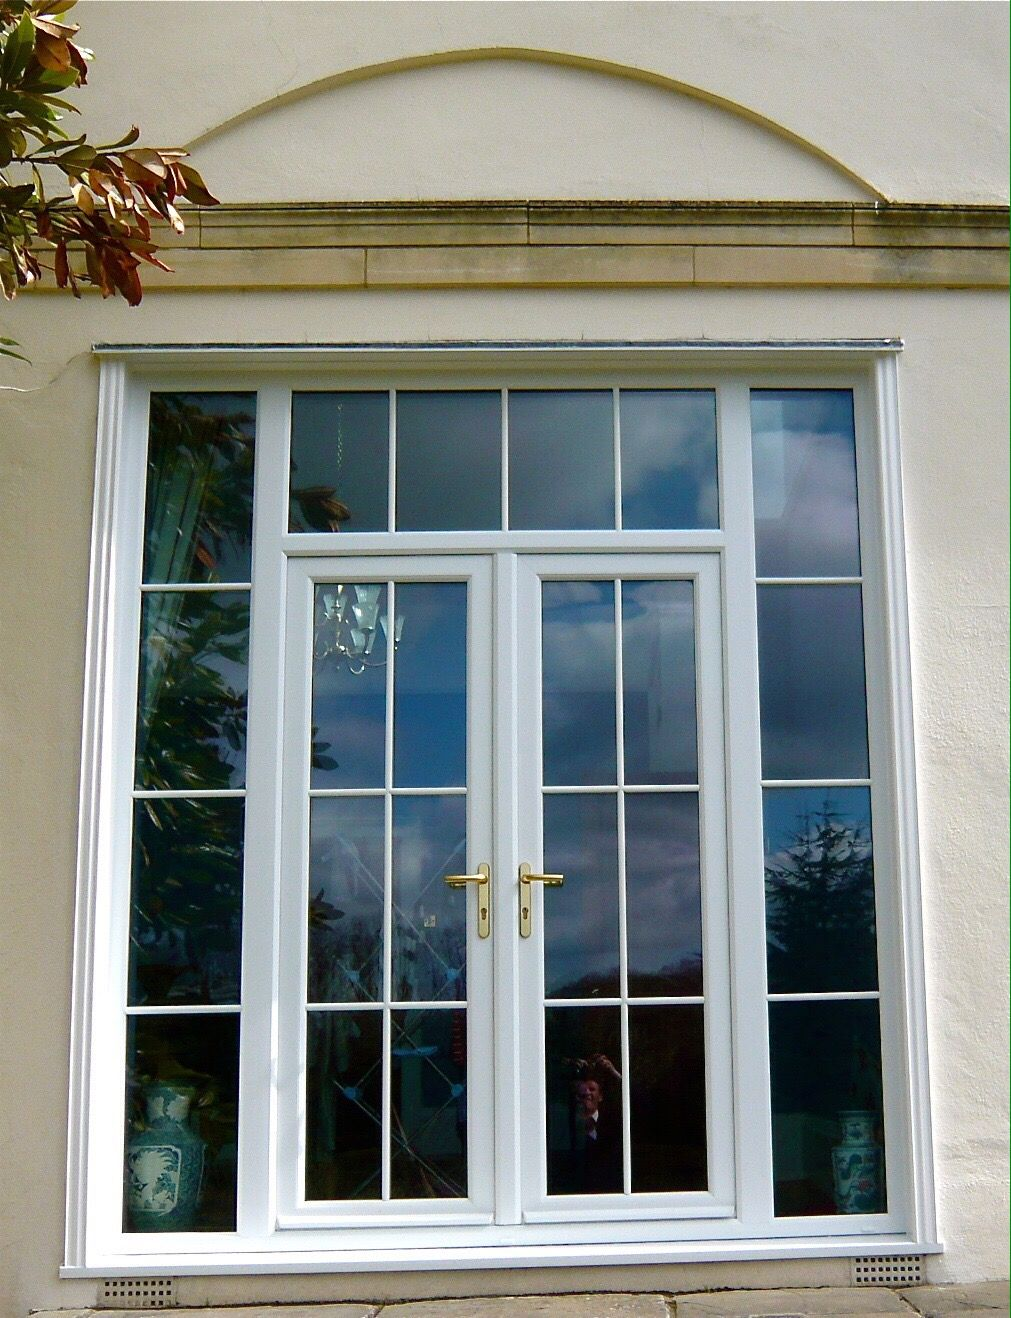 Casement Windows In Somerset Notaro Windows House Window Design Casement Windows Modern Windows And Doors